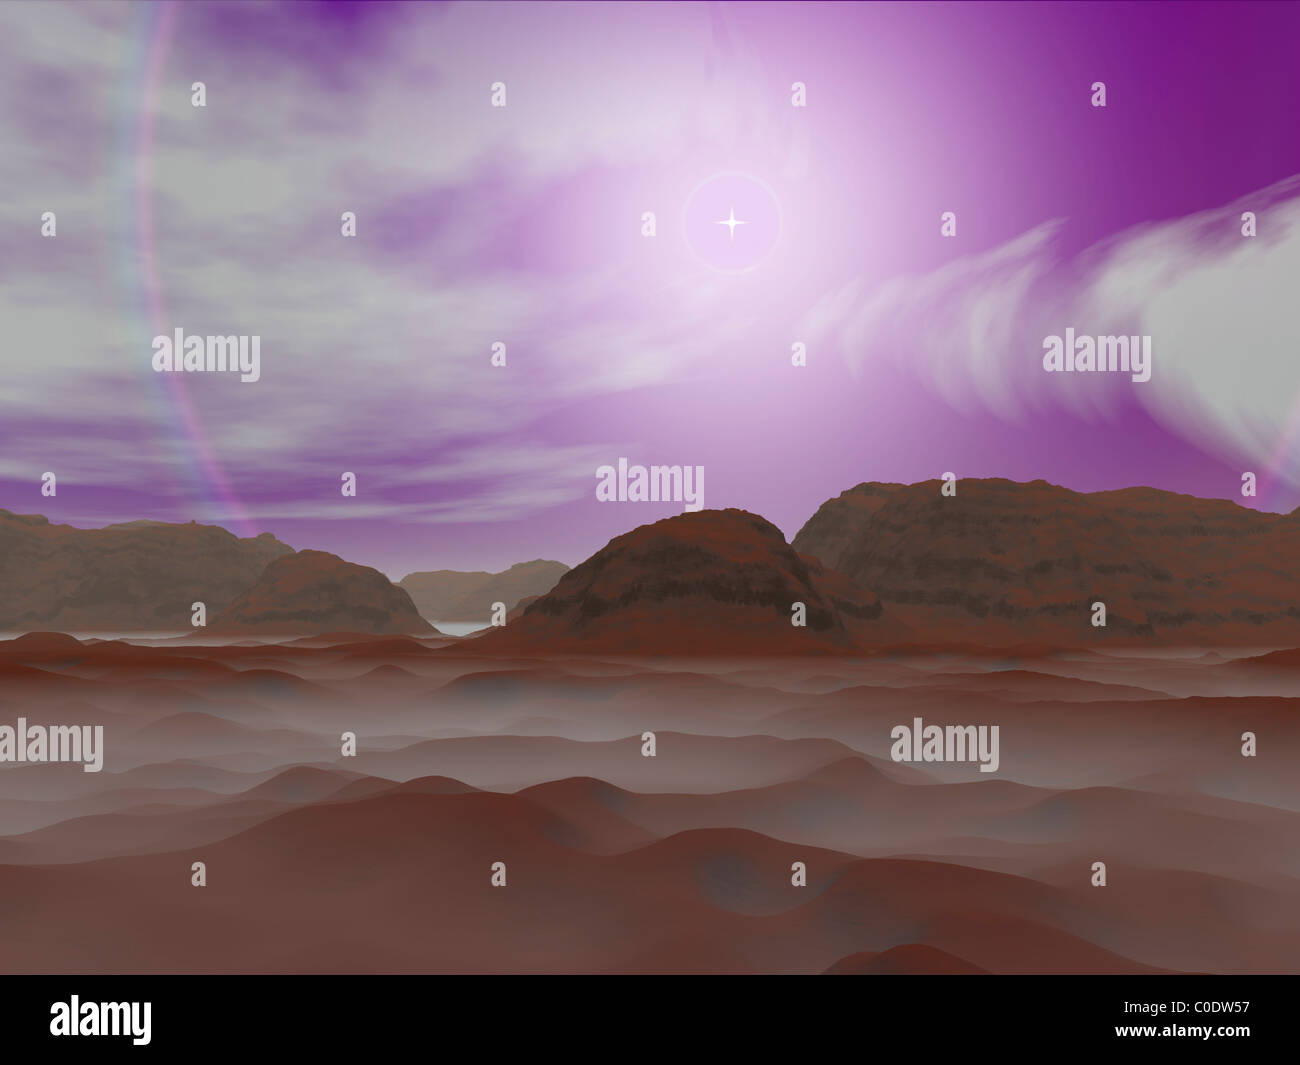 Artist's concept of the atmosphere on Pluto. - Stock Image